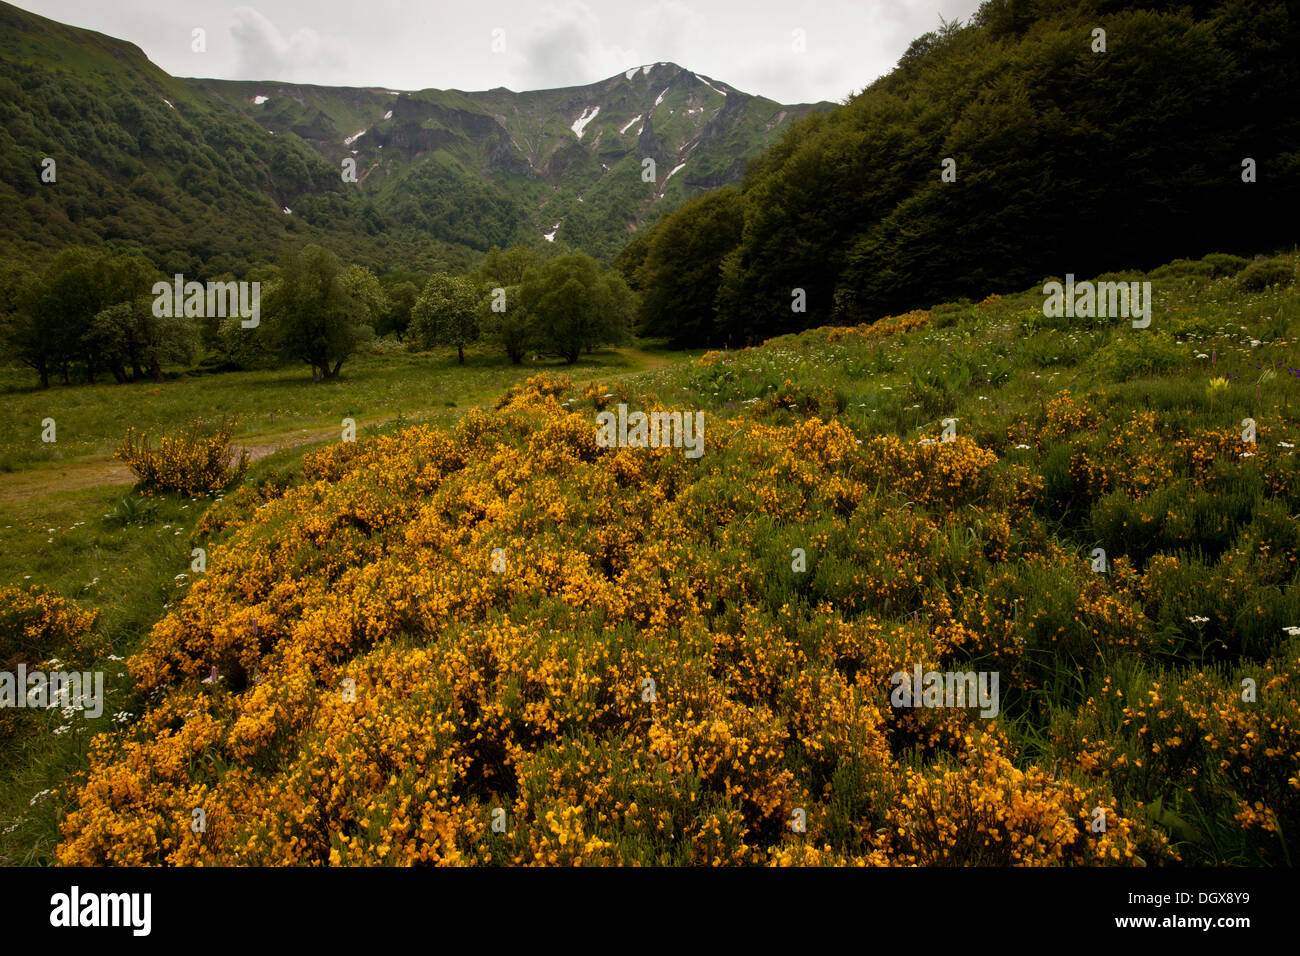 Stinking Broom, Cytisus oromediterraneus = Cytisus purgans growing in mountain pastures in the Auvergne. France Stock Photo